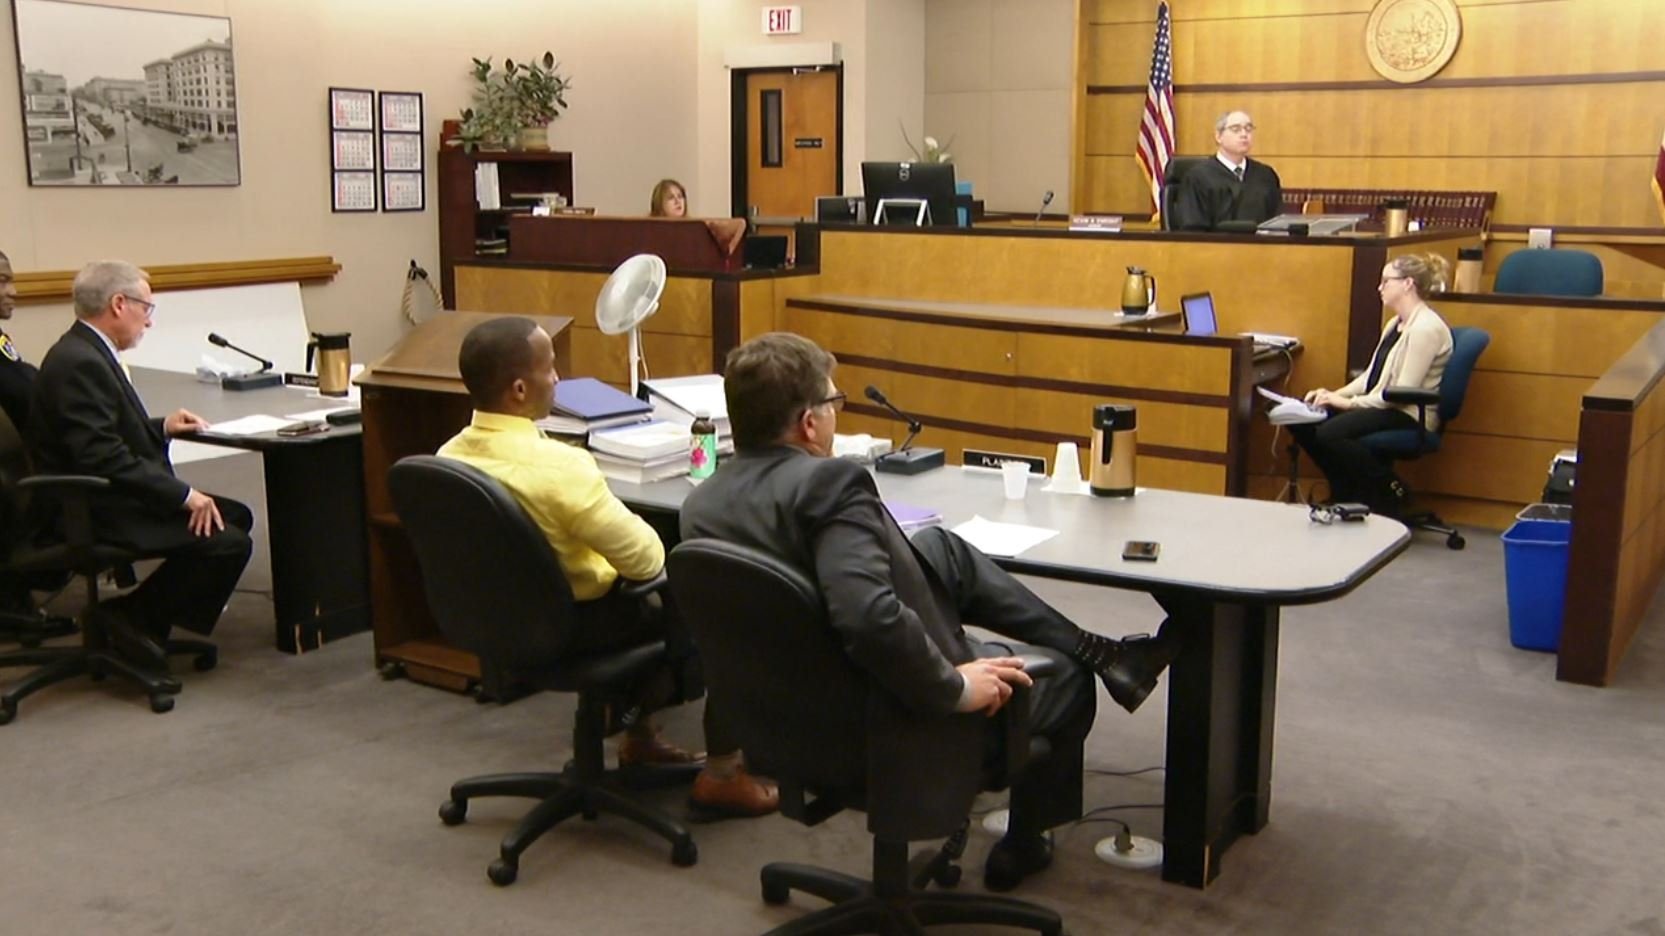 Sgt. was not retaliated against for reporting racist cartoon, jury finds